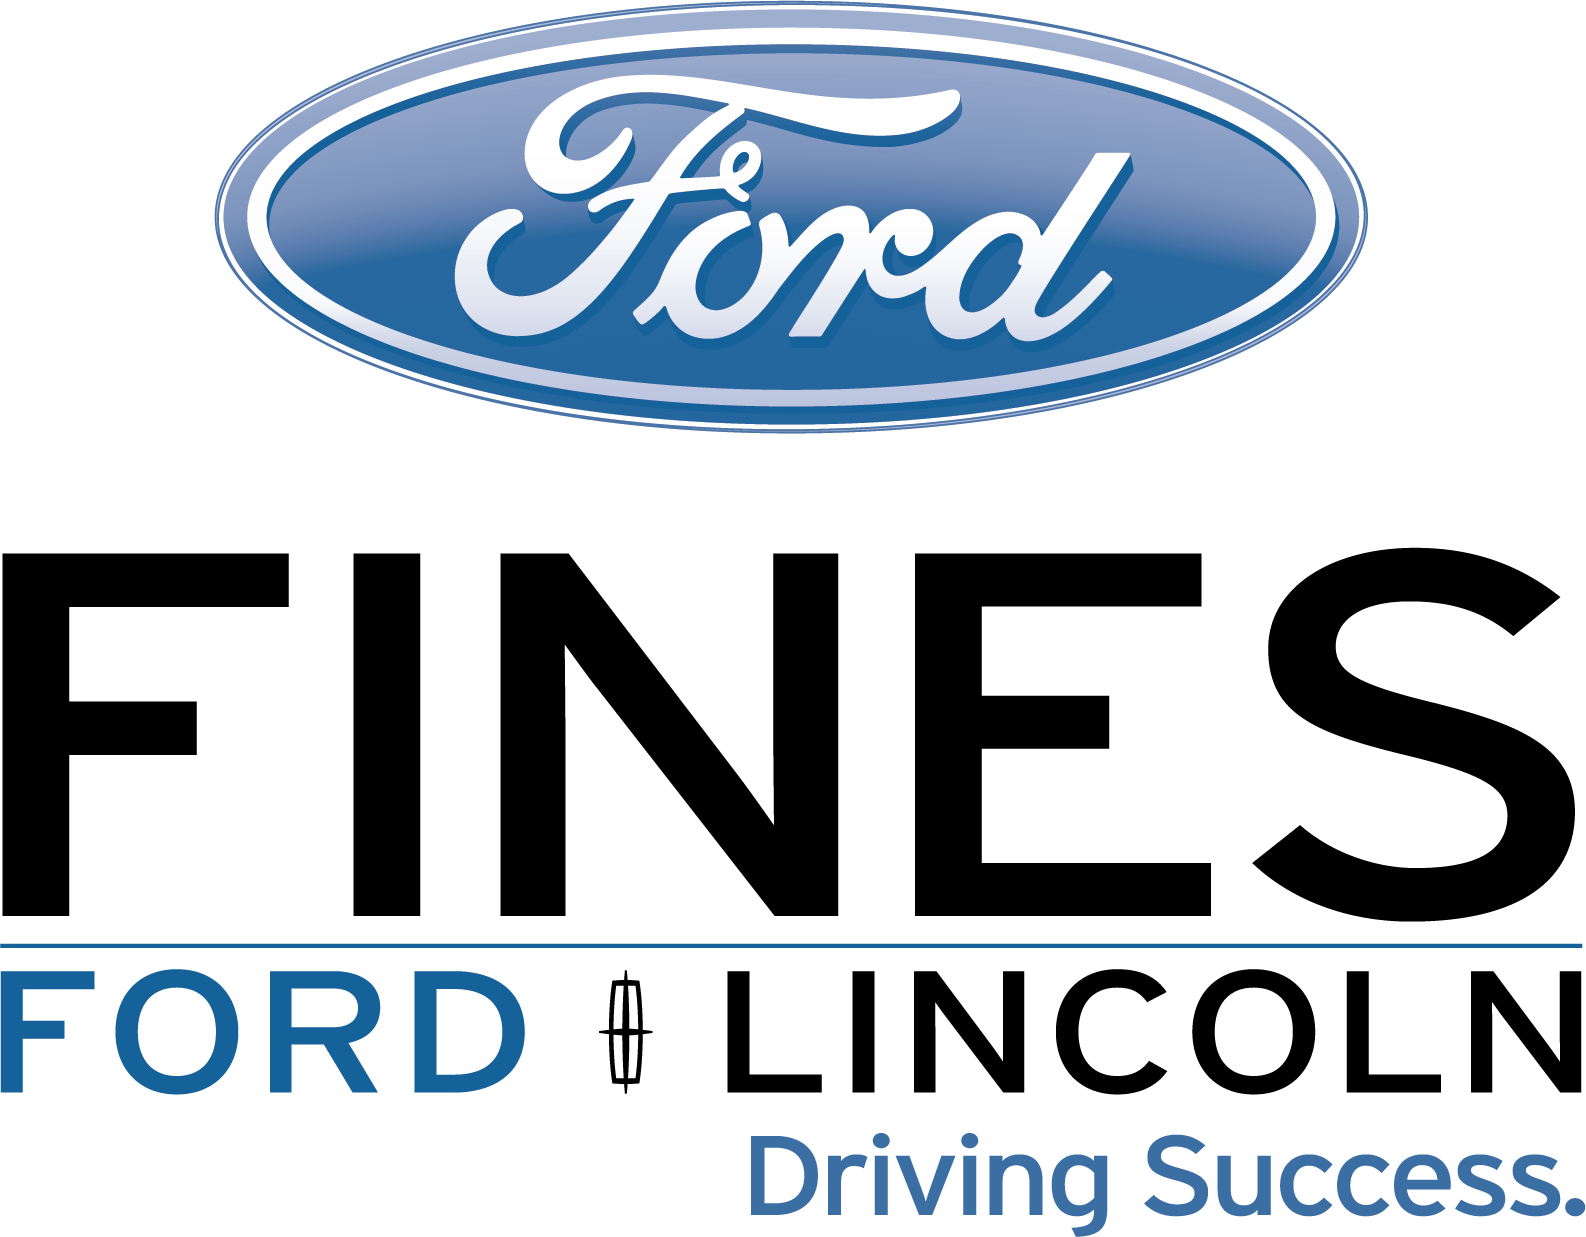 Fines Ford